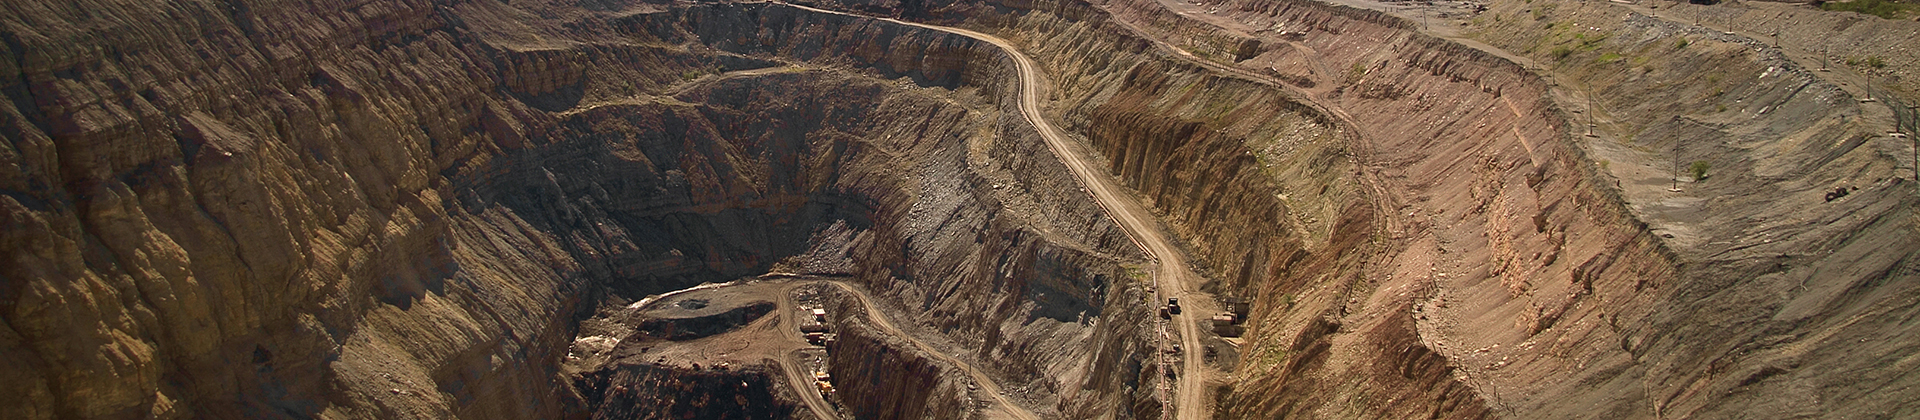 Mining industry's energy problem